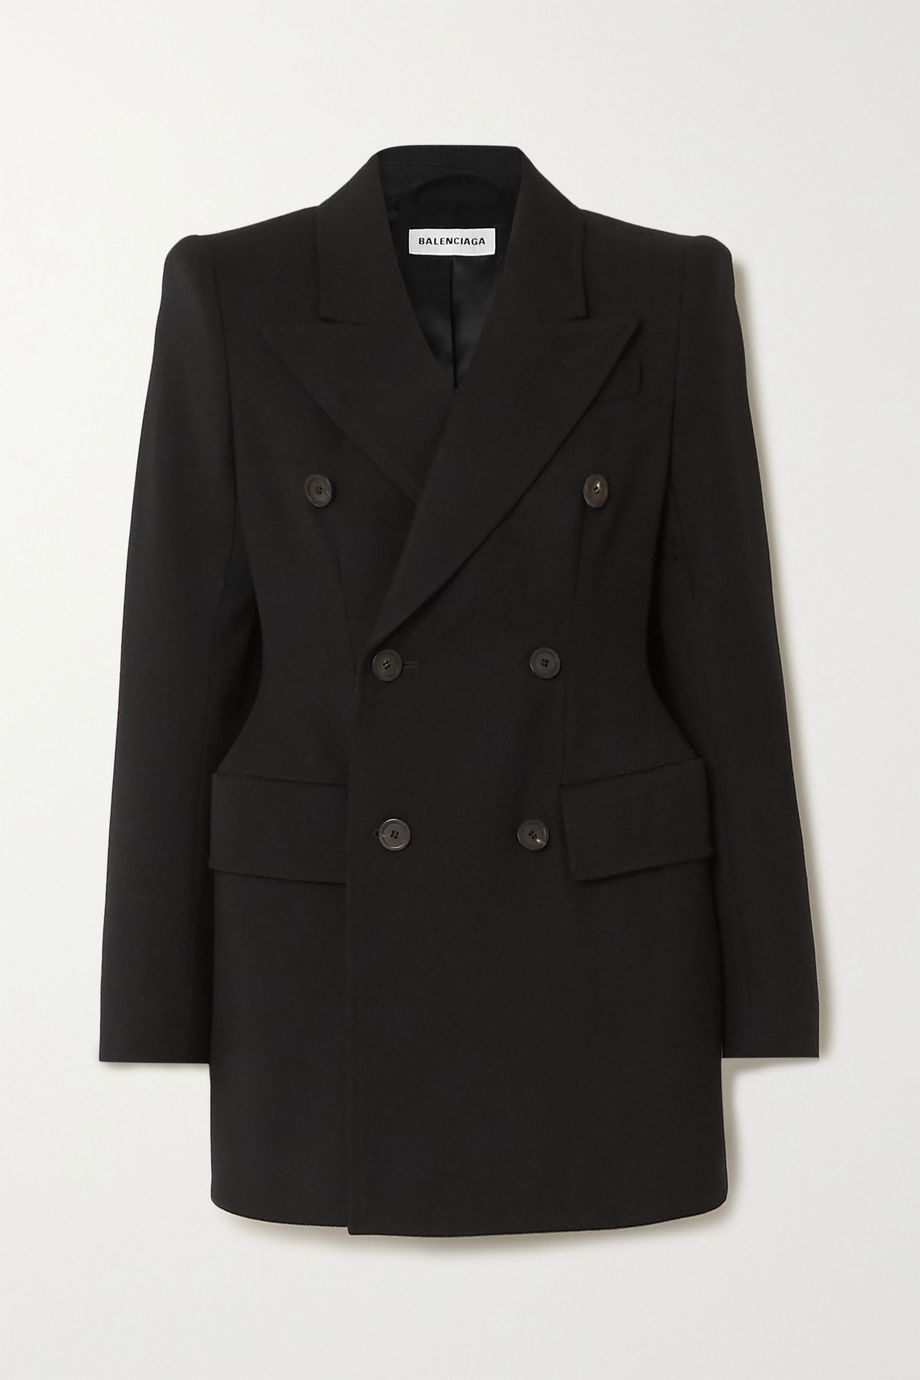 Balenciaga Hourglass double-breasted wool-twill blazer